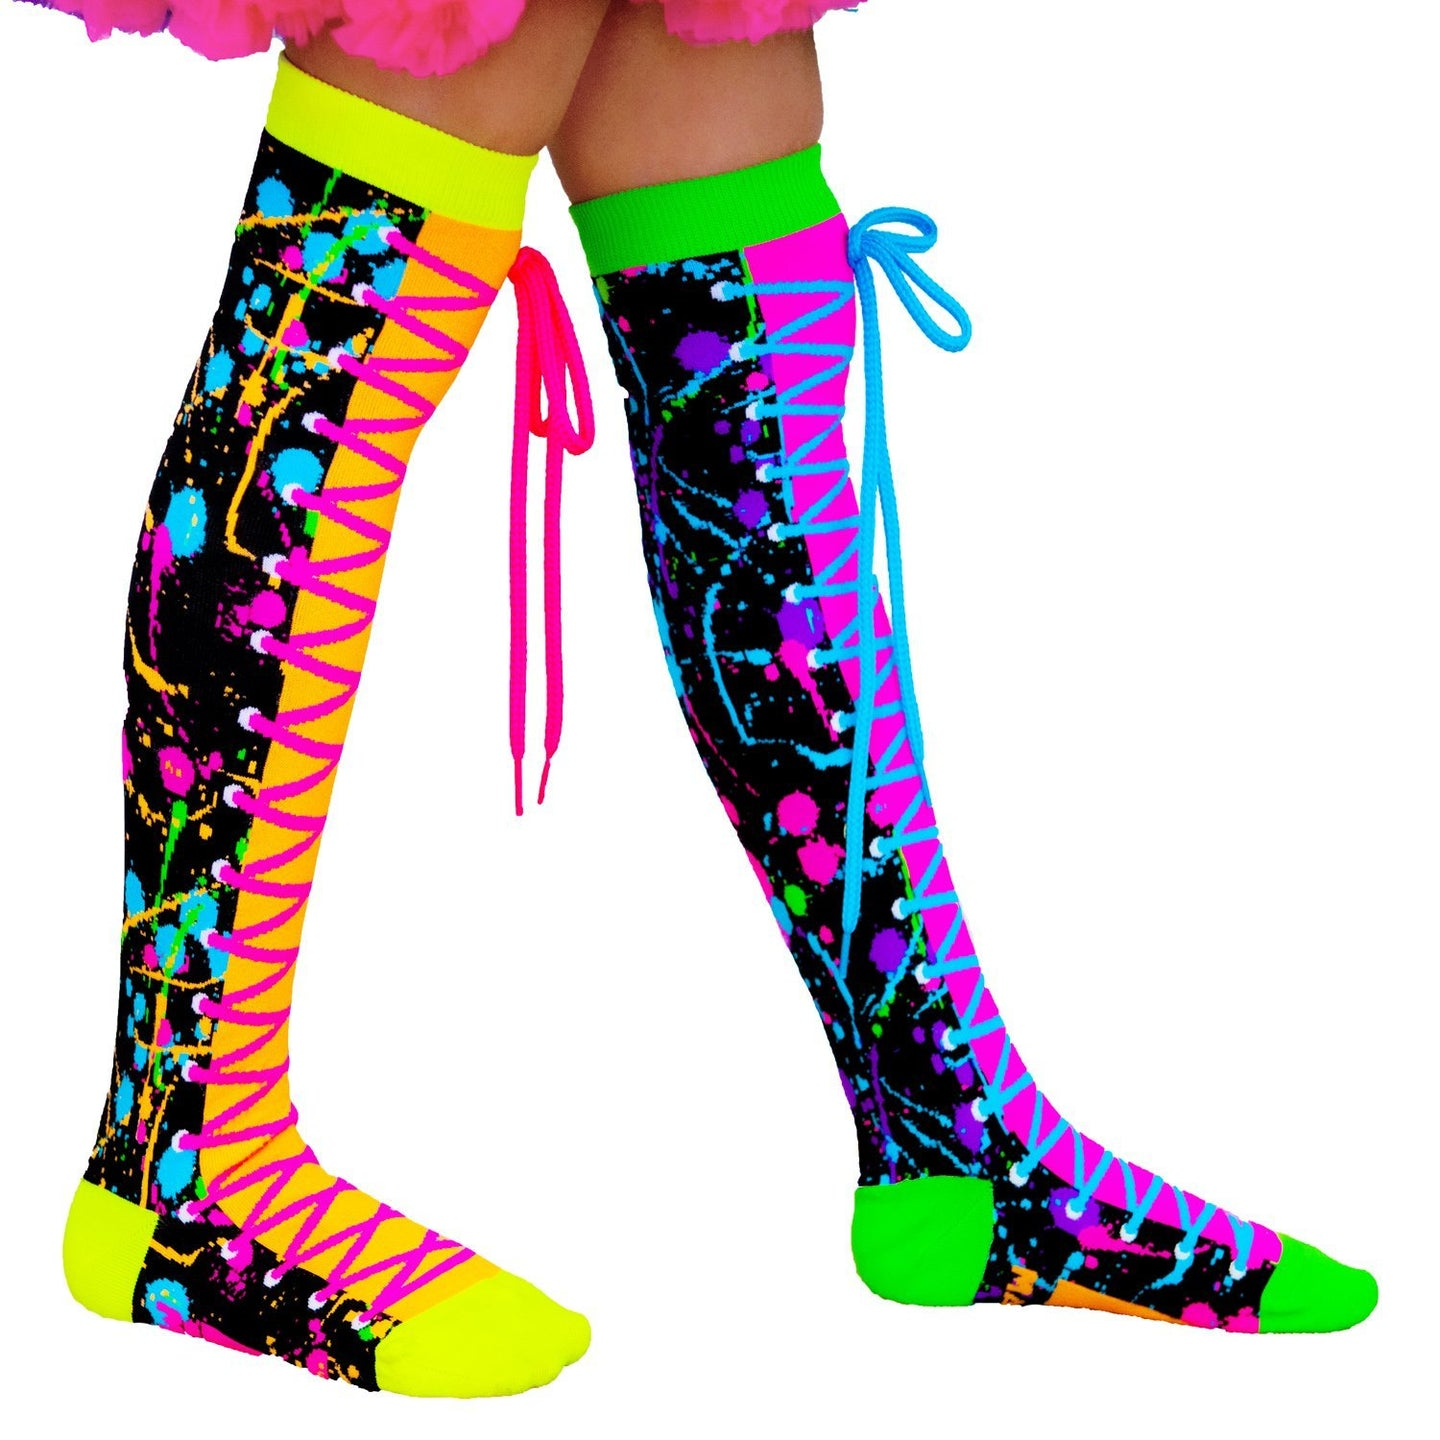 PAINT SPLATTER MadMia Socks